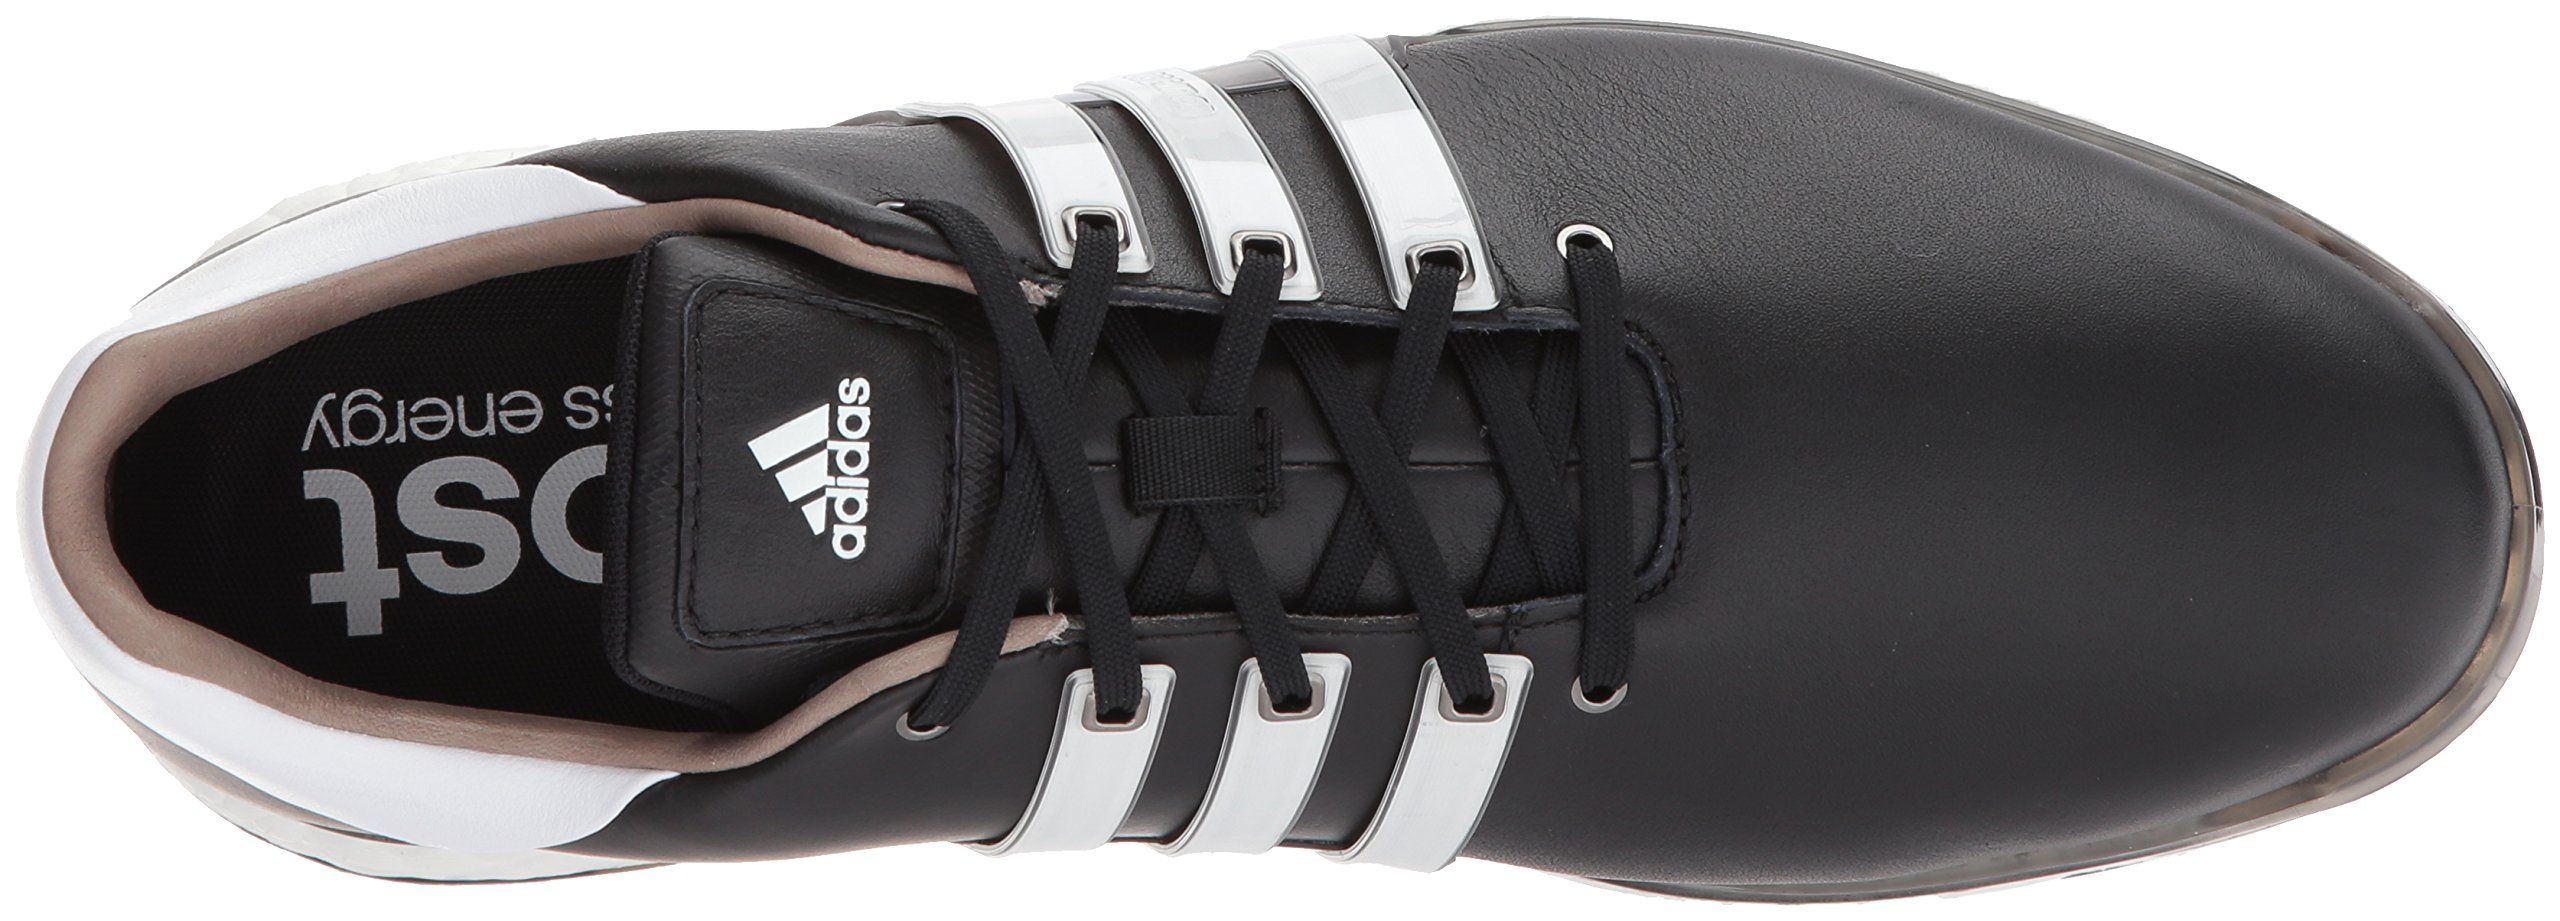 huge selection of b2706 67879 adidas Mens TOUR 360 2.0 Golf Shoe Core Black White 10 M US   Want